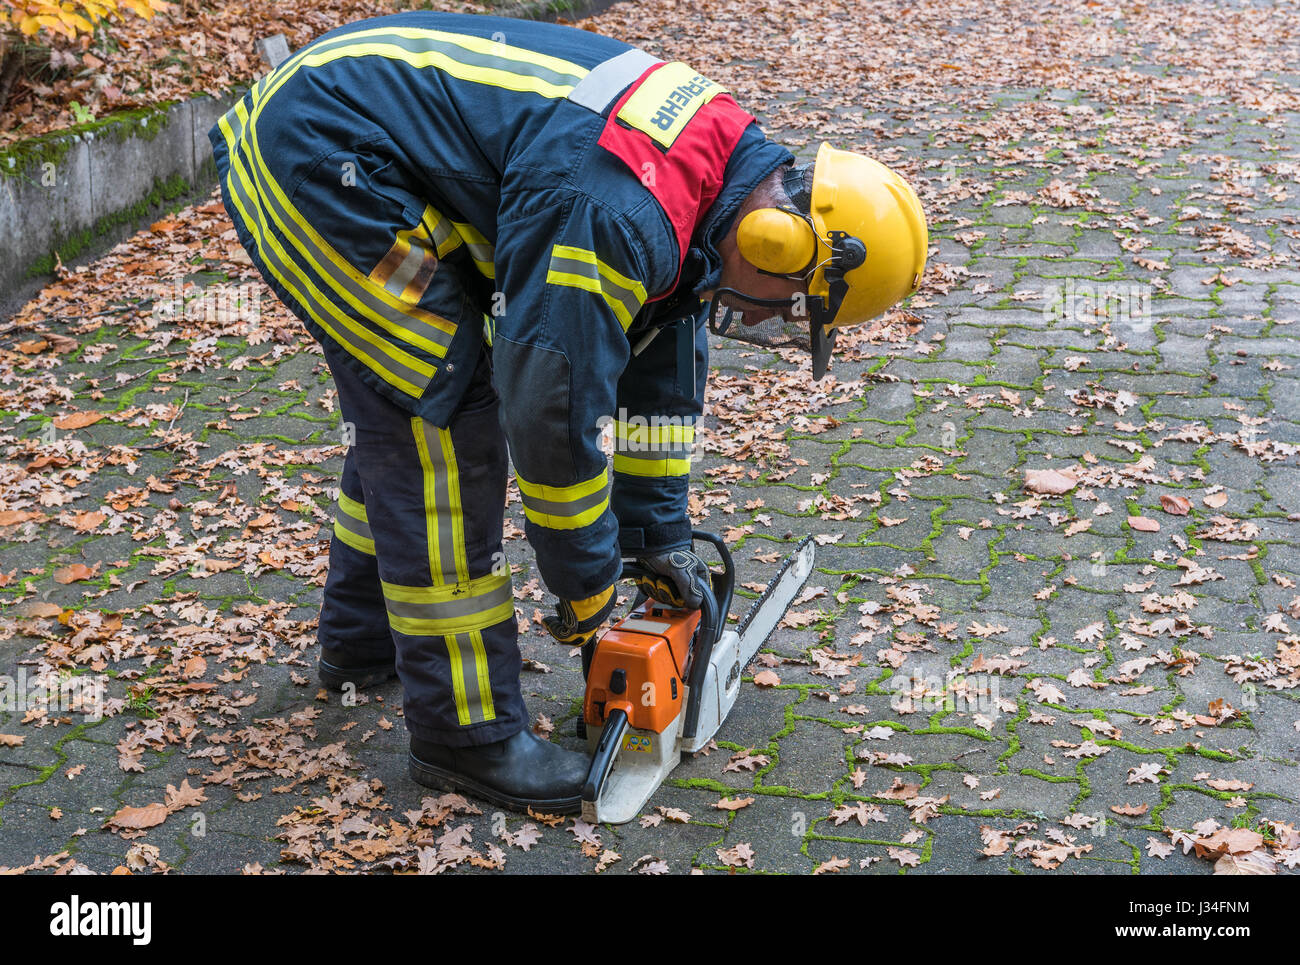 German Fireman in action outdoors with chainsaw - Stock Image